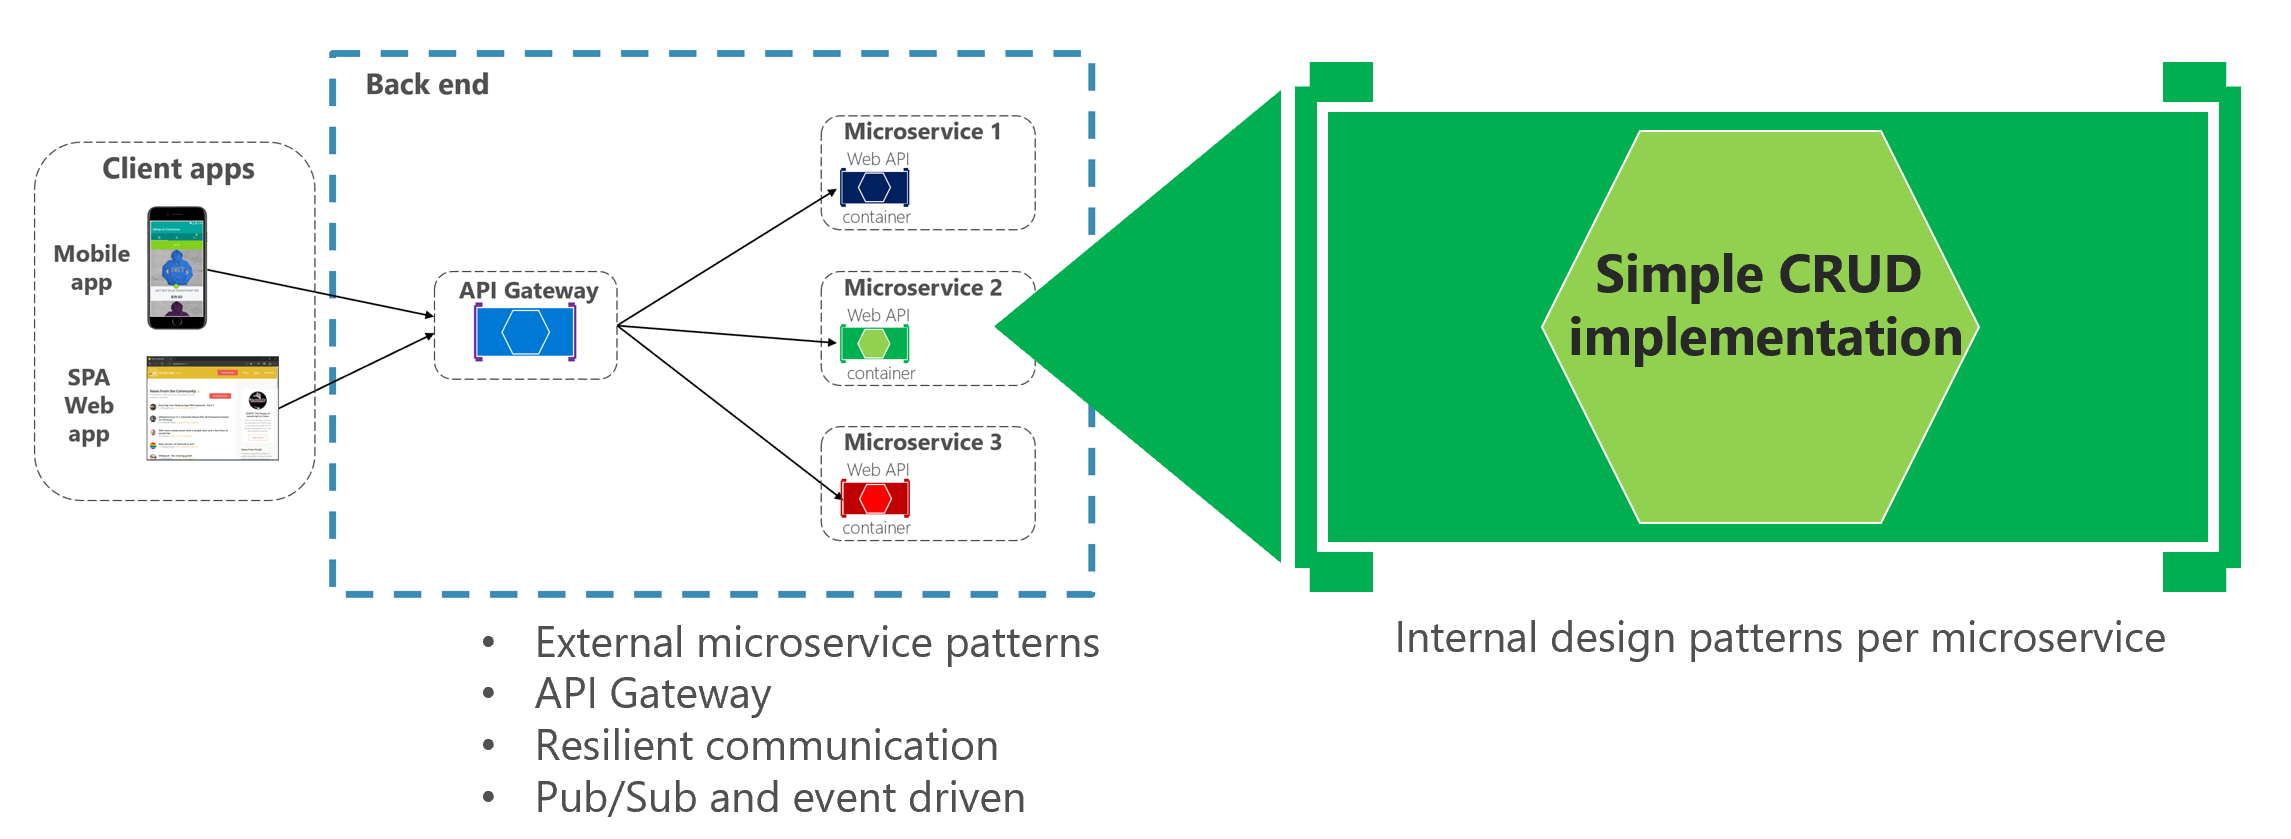 Creating a simple data-driven CRUD microservice | Microsoft Docs